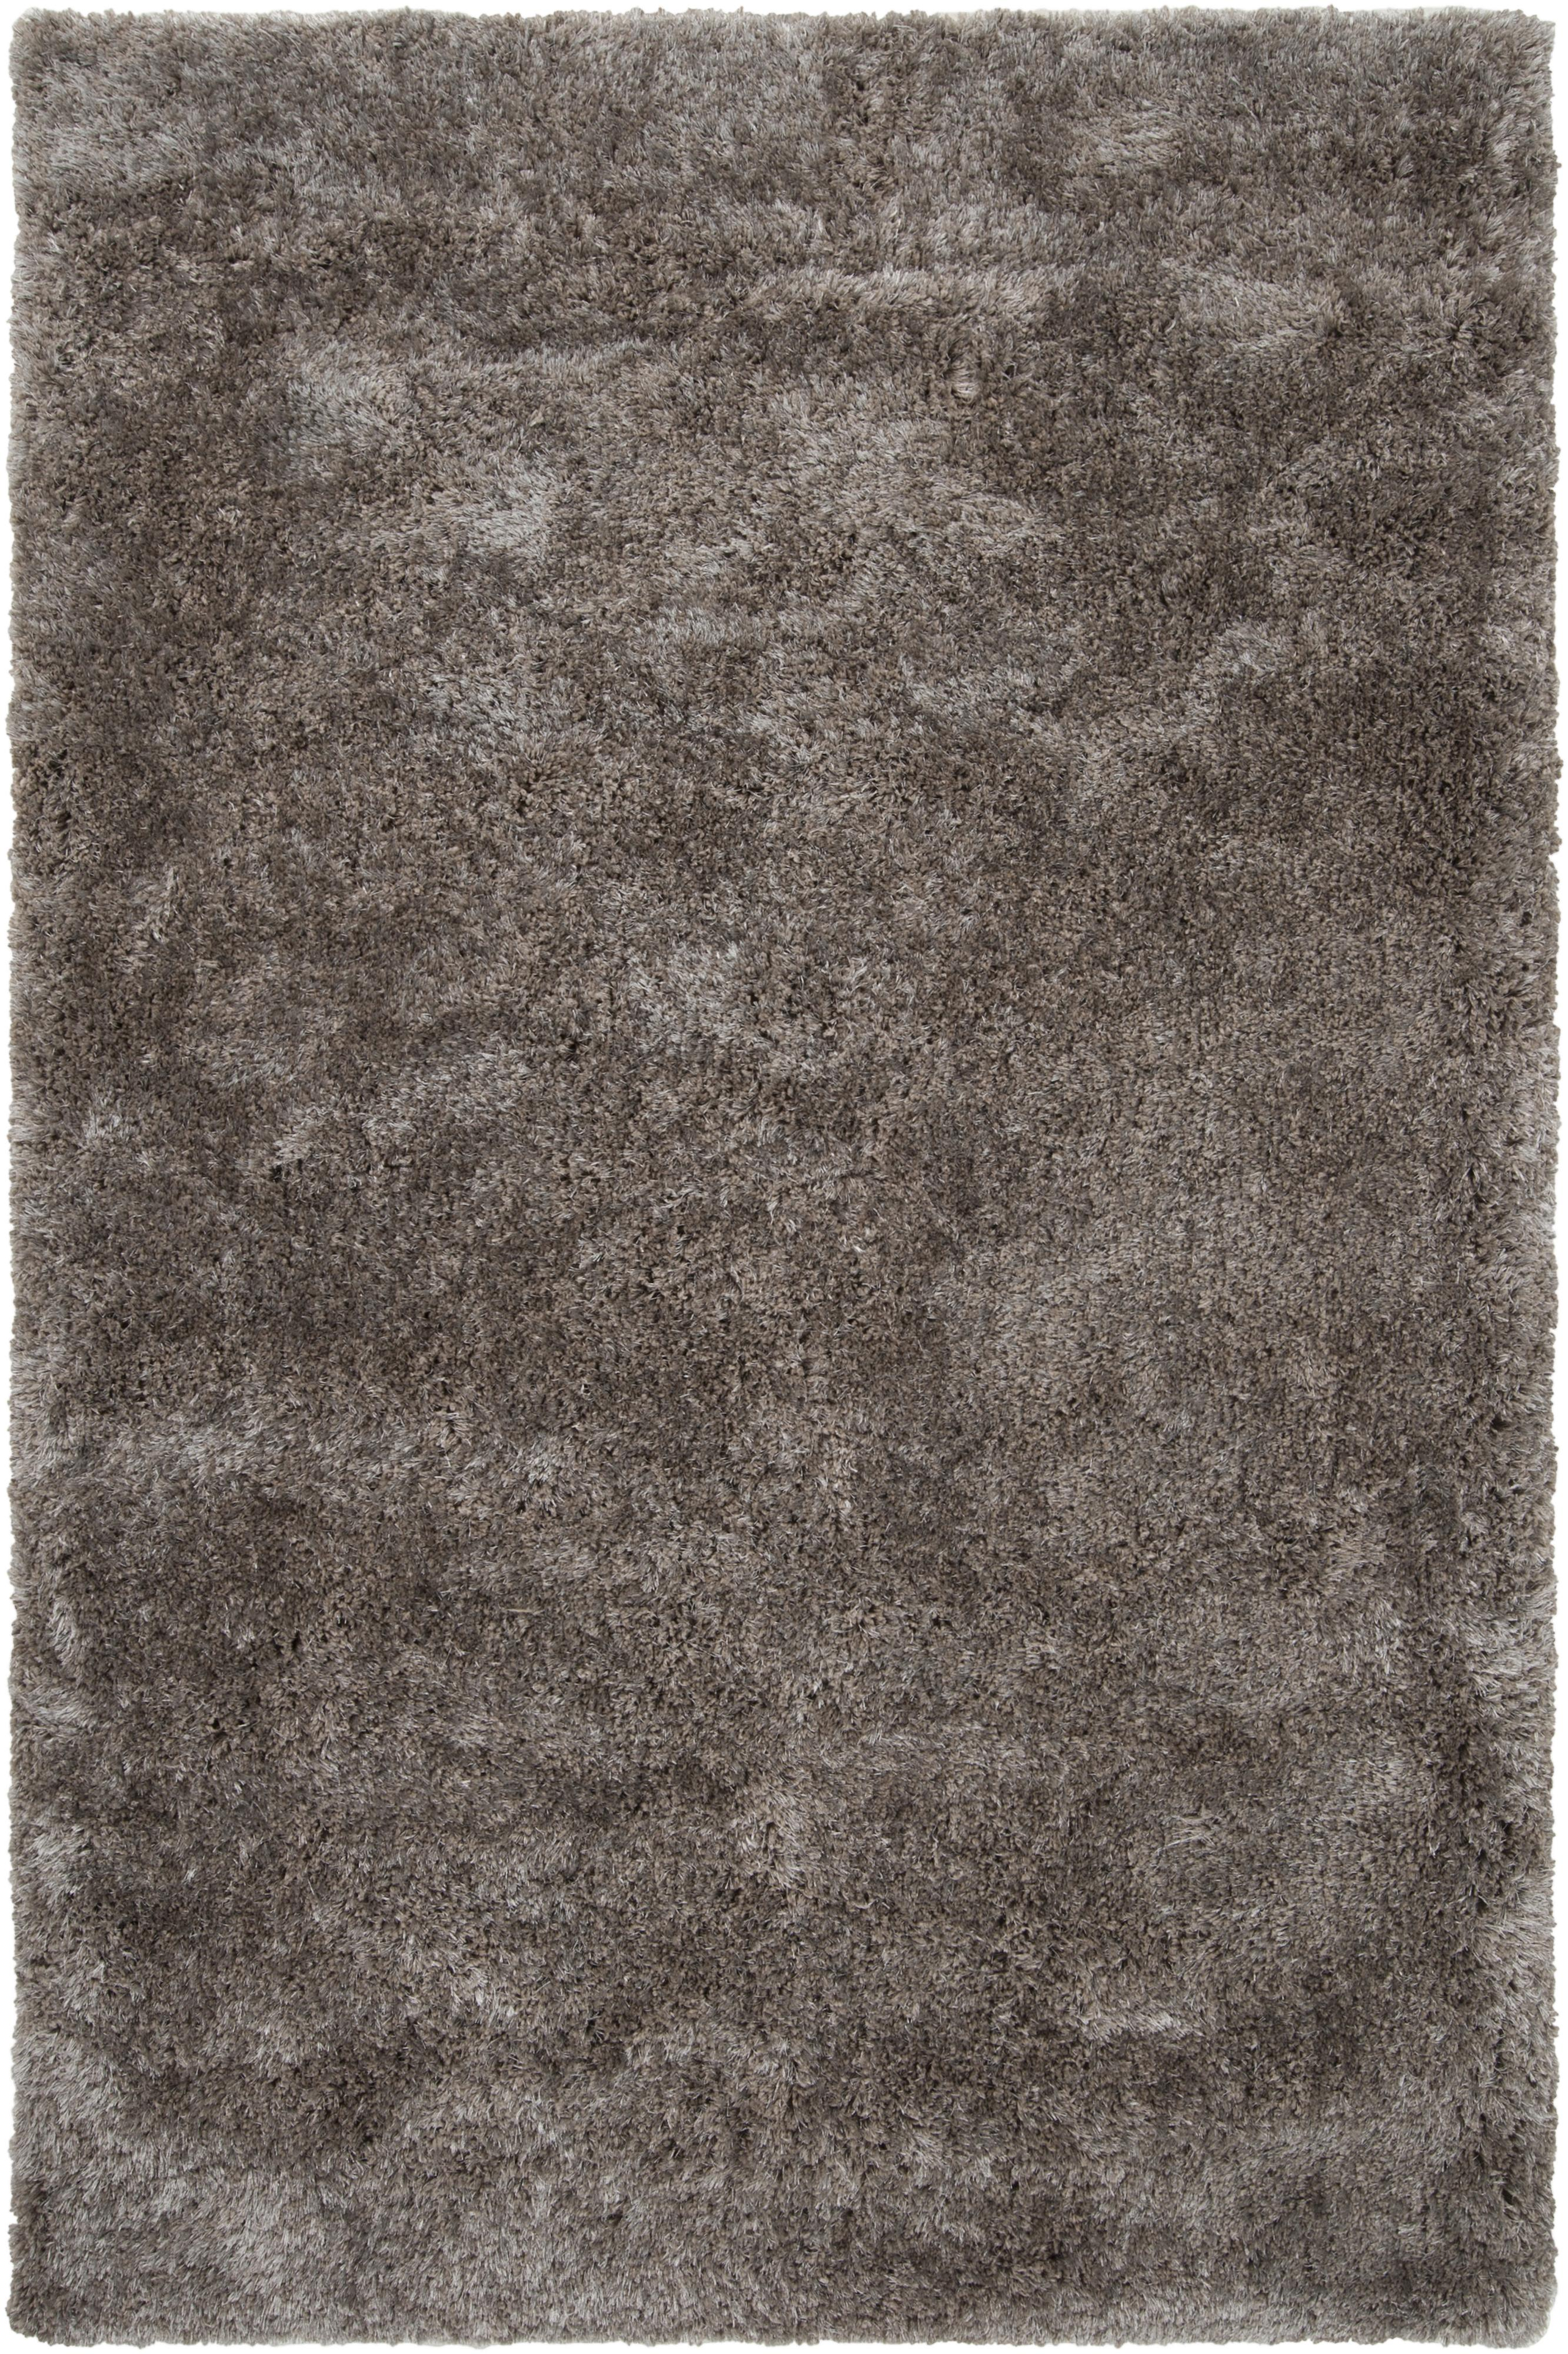 Surya Grizzly 8' x 10' - Item Number: GRIZZLY6-810